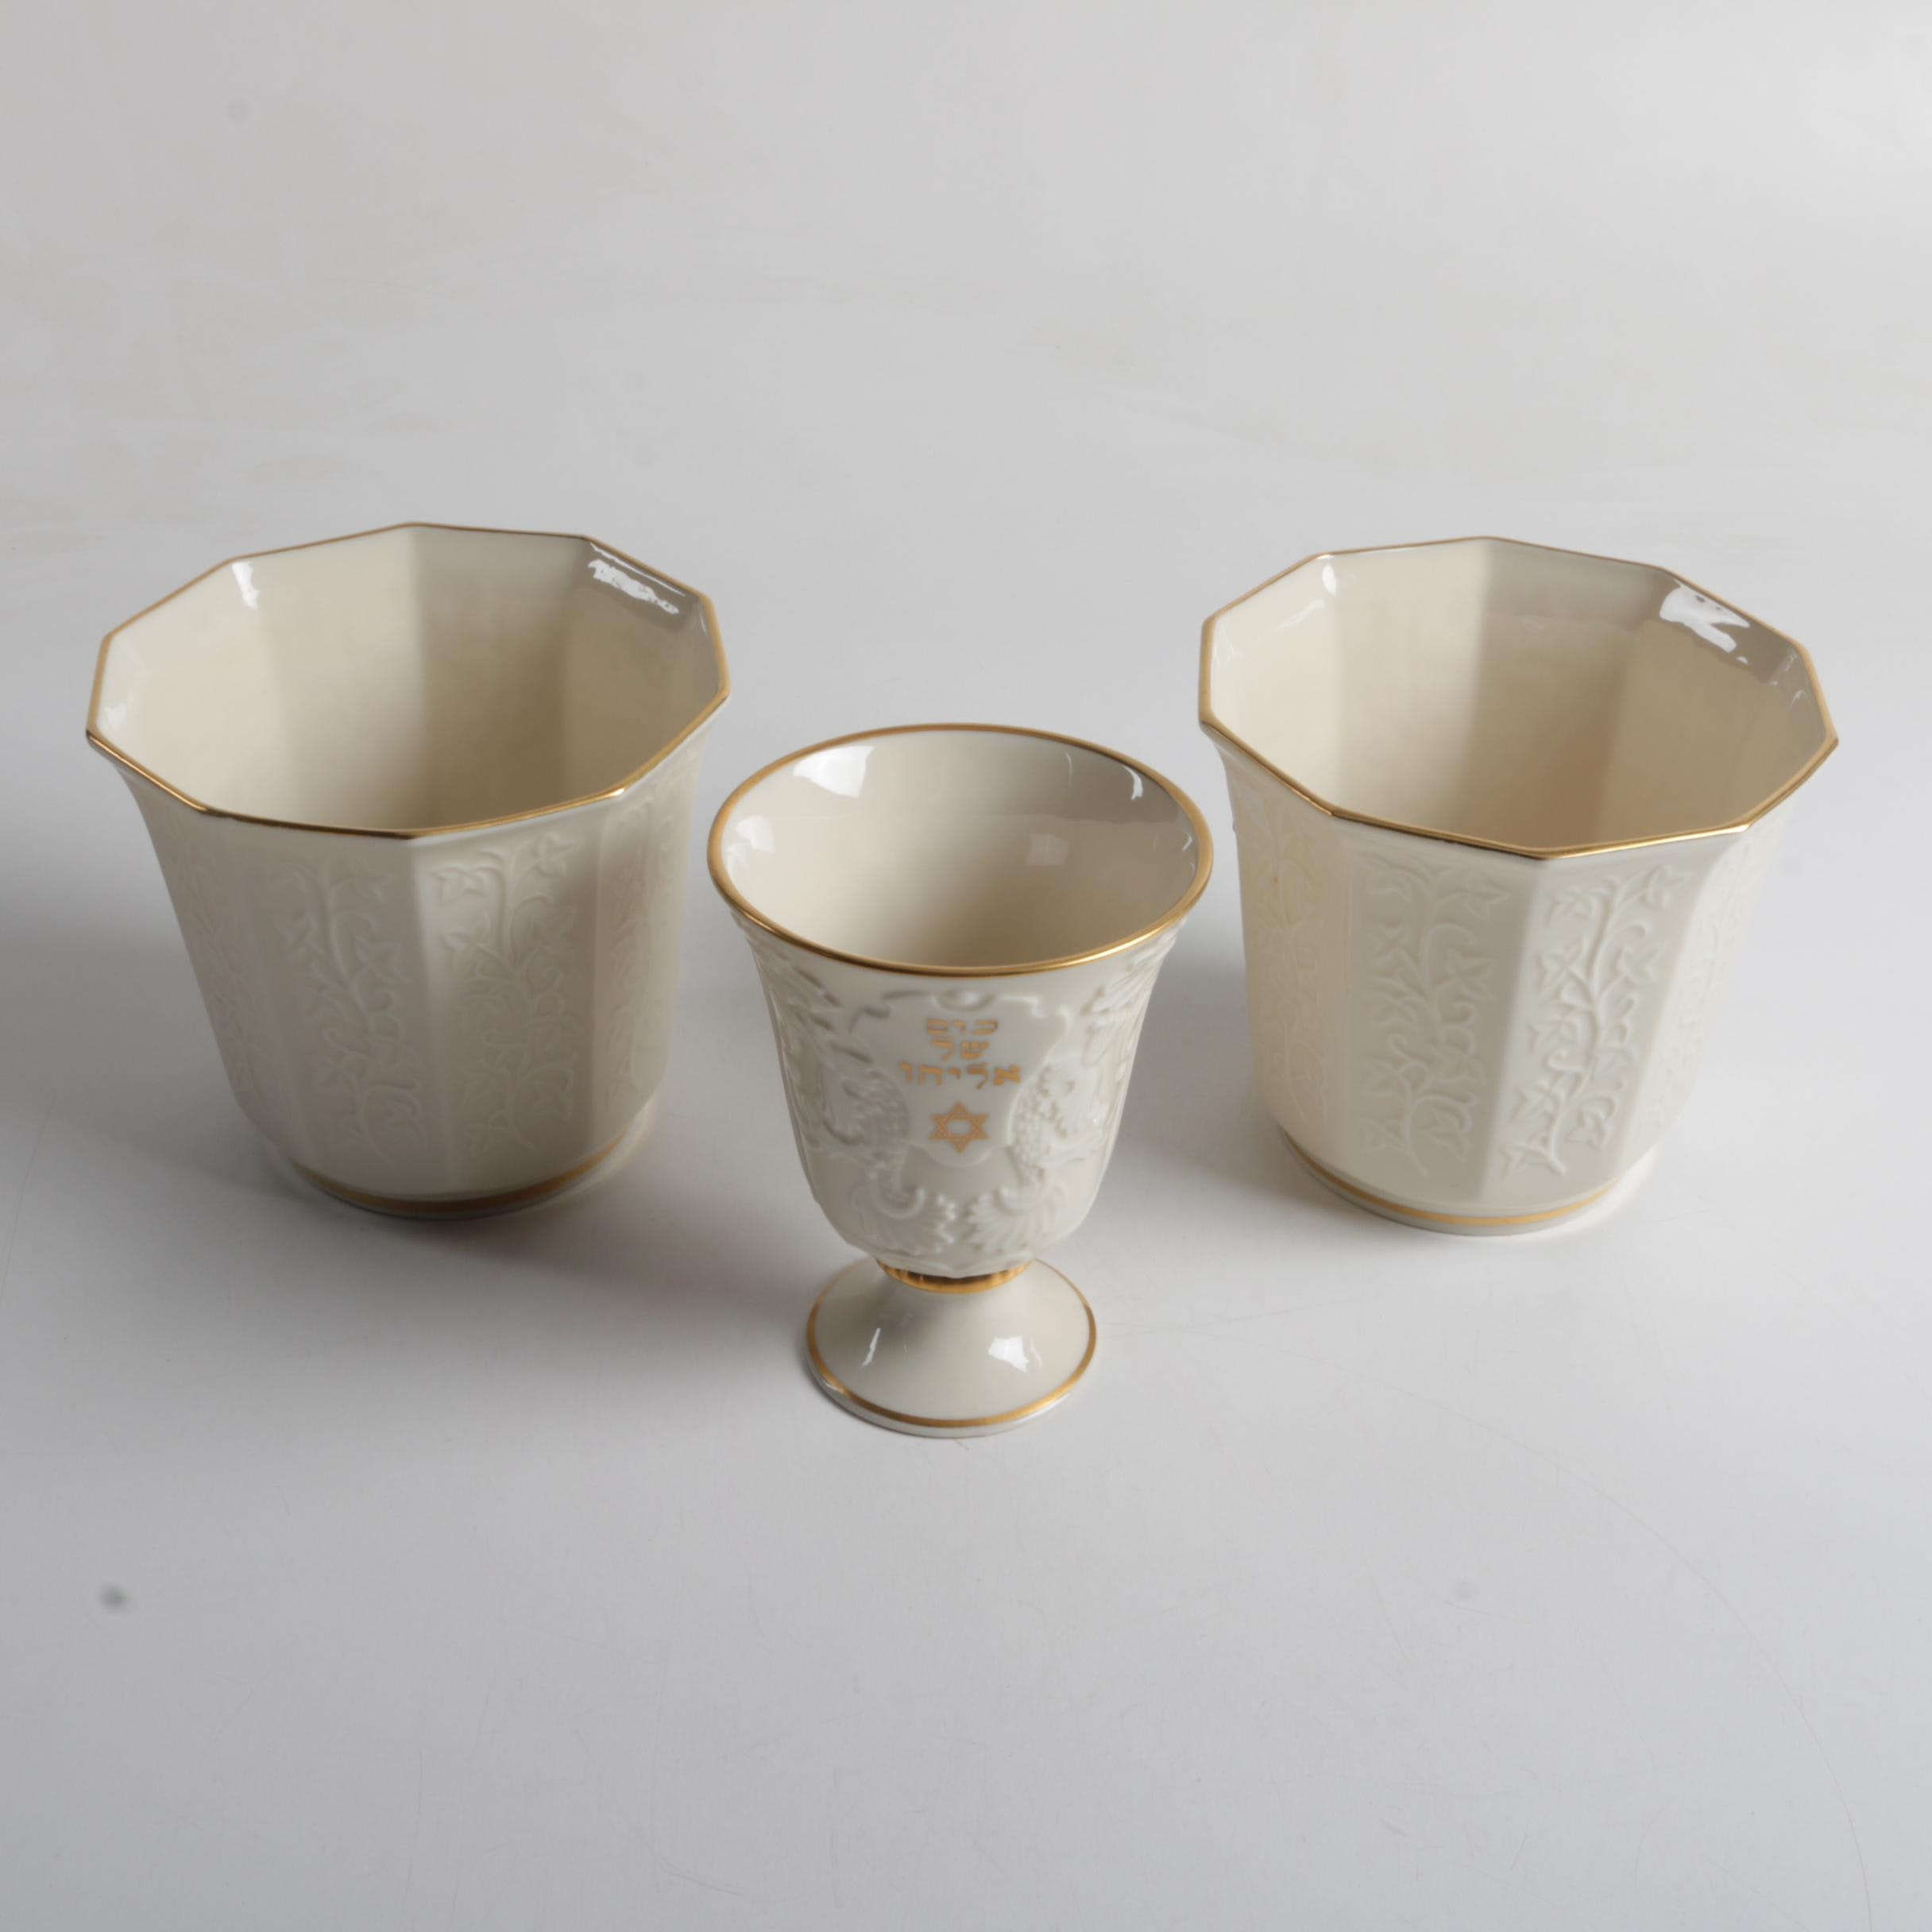 Pair of Lenox China Vases with a Passover Goblet